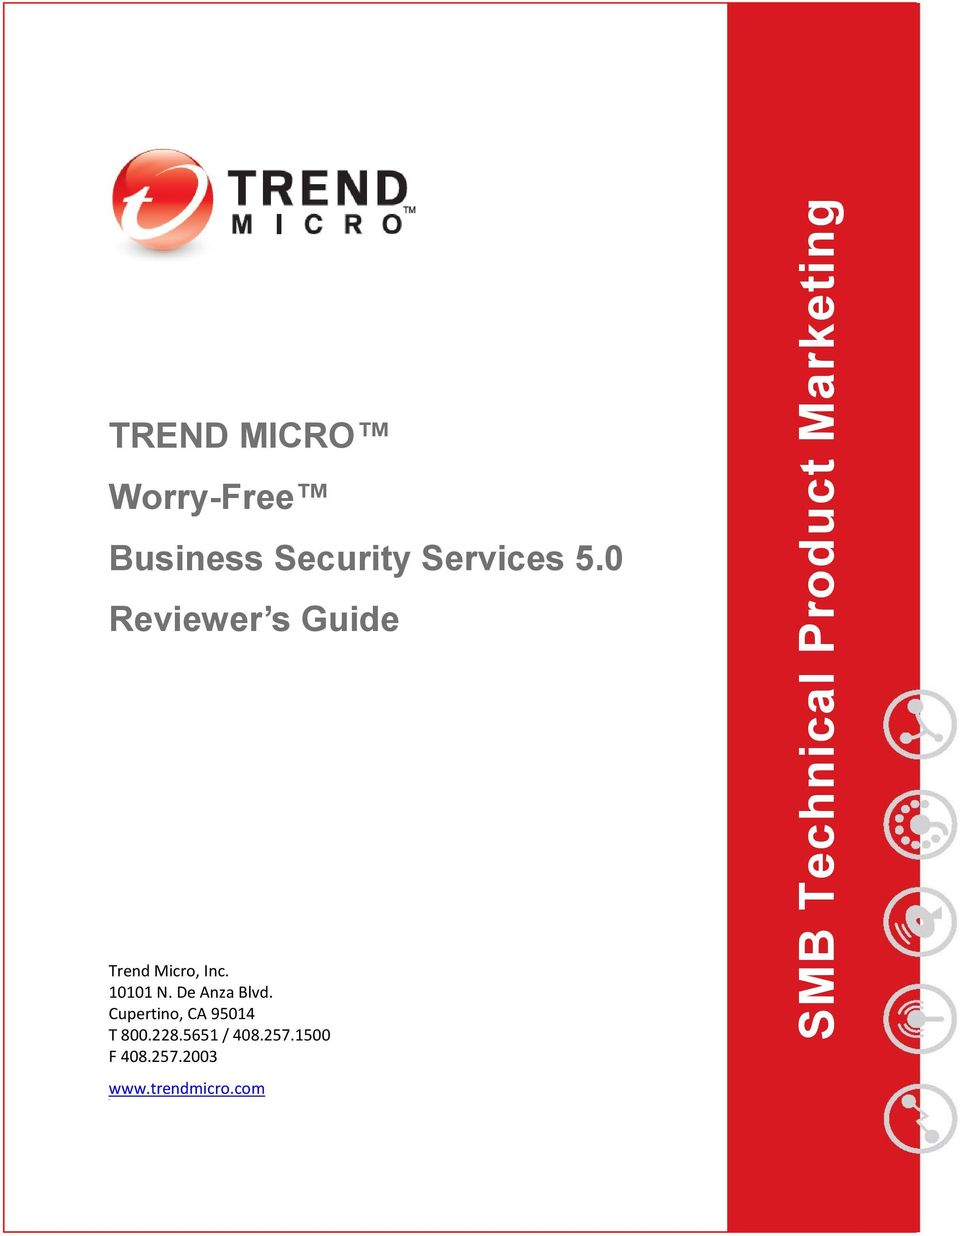 SMB Technical Product Marketing  TREND MICRO Worry-Free